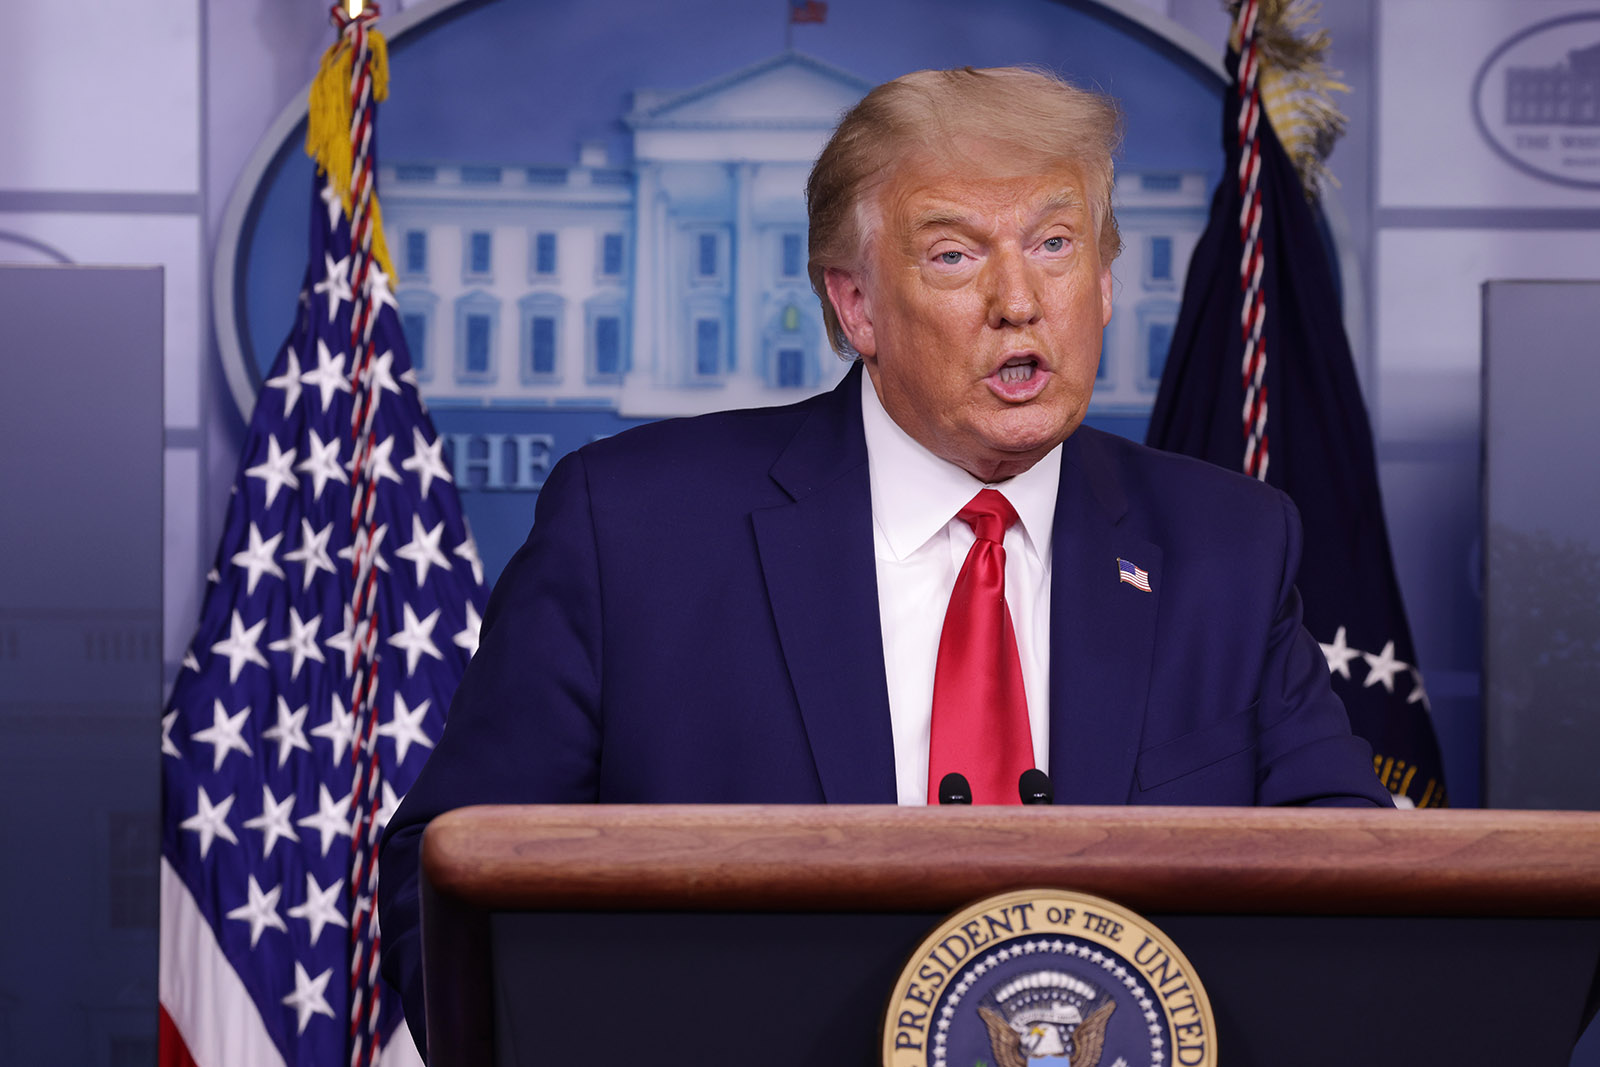 President Donald Trump speaks to the press during a news conference in the White House on Wednesday in Washington.